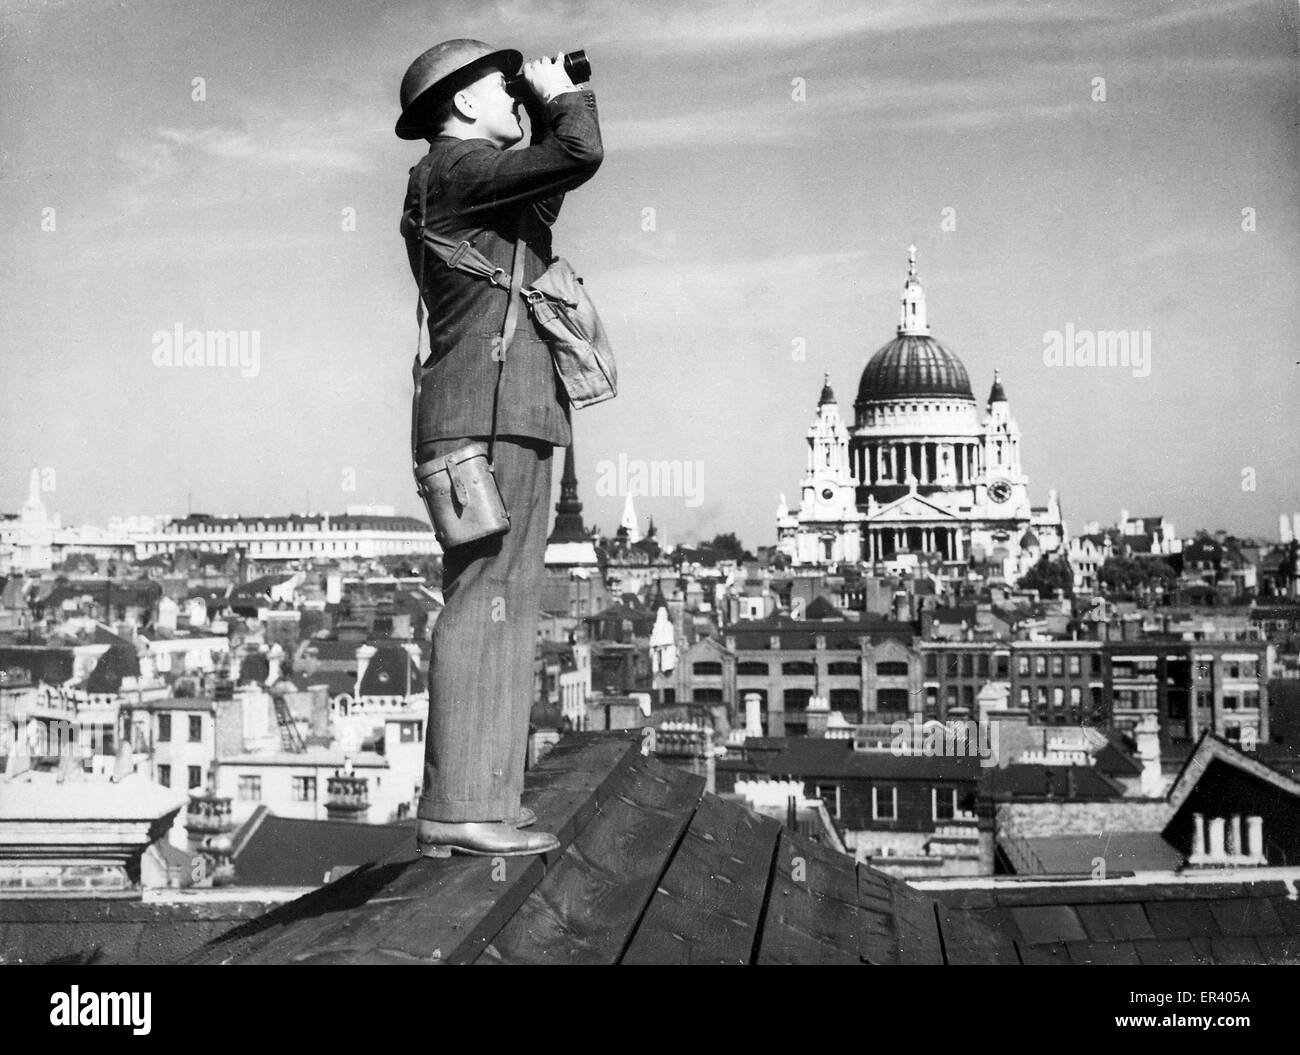 A Royal Observer Corps spotter scans the skies of London. Battle of Britain air observer keeping watch over London - Stock Image